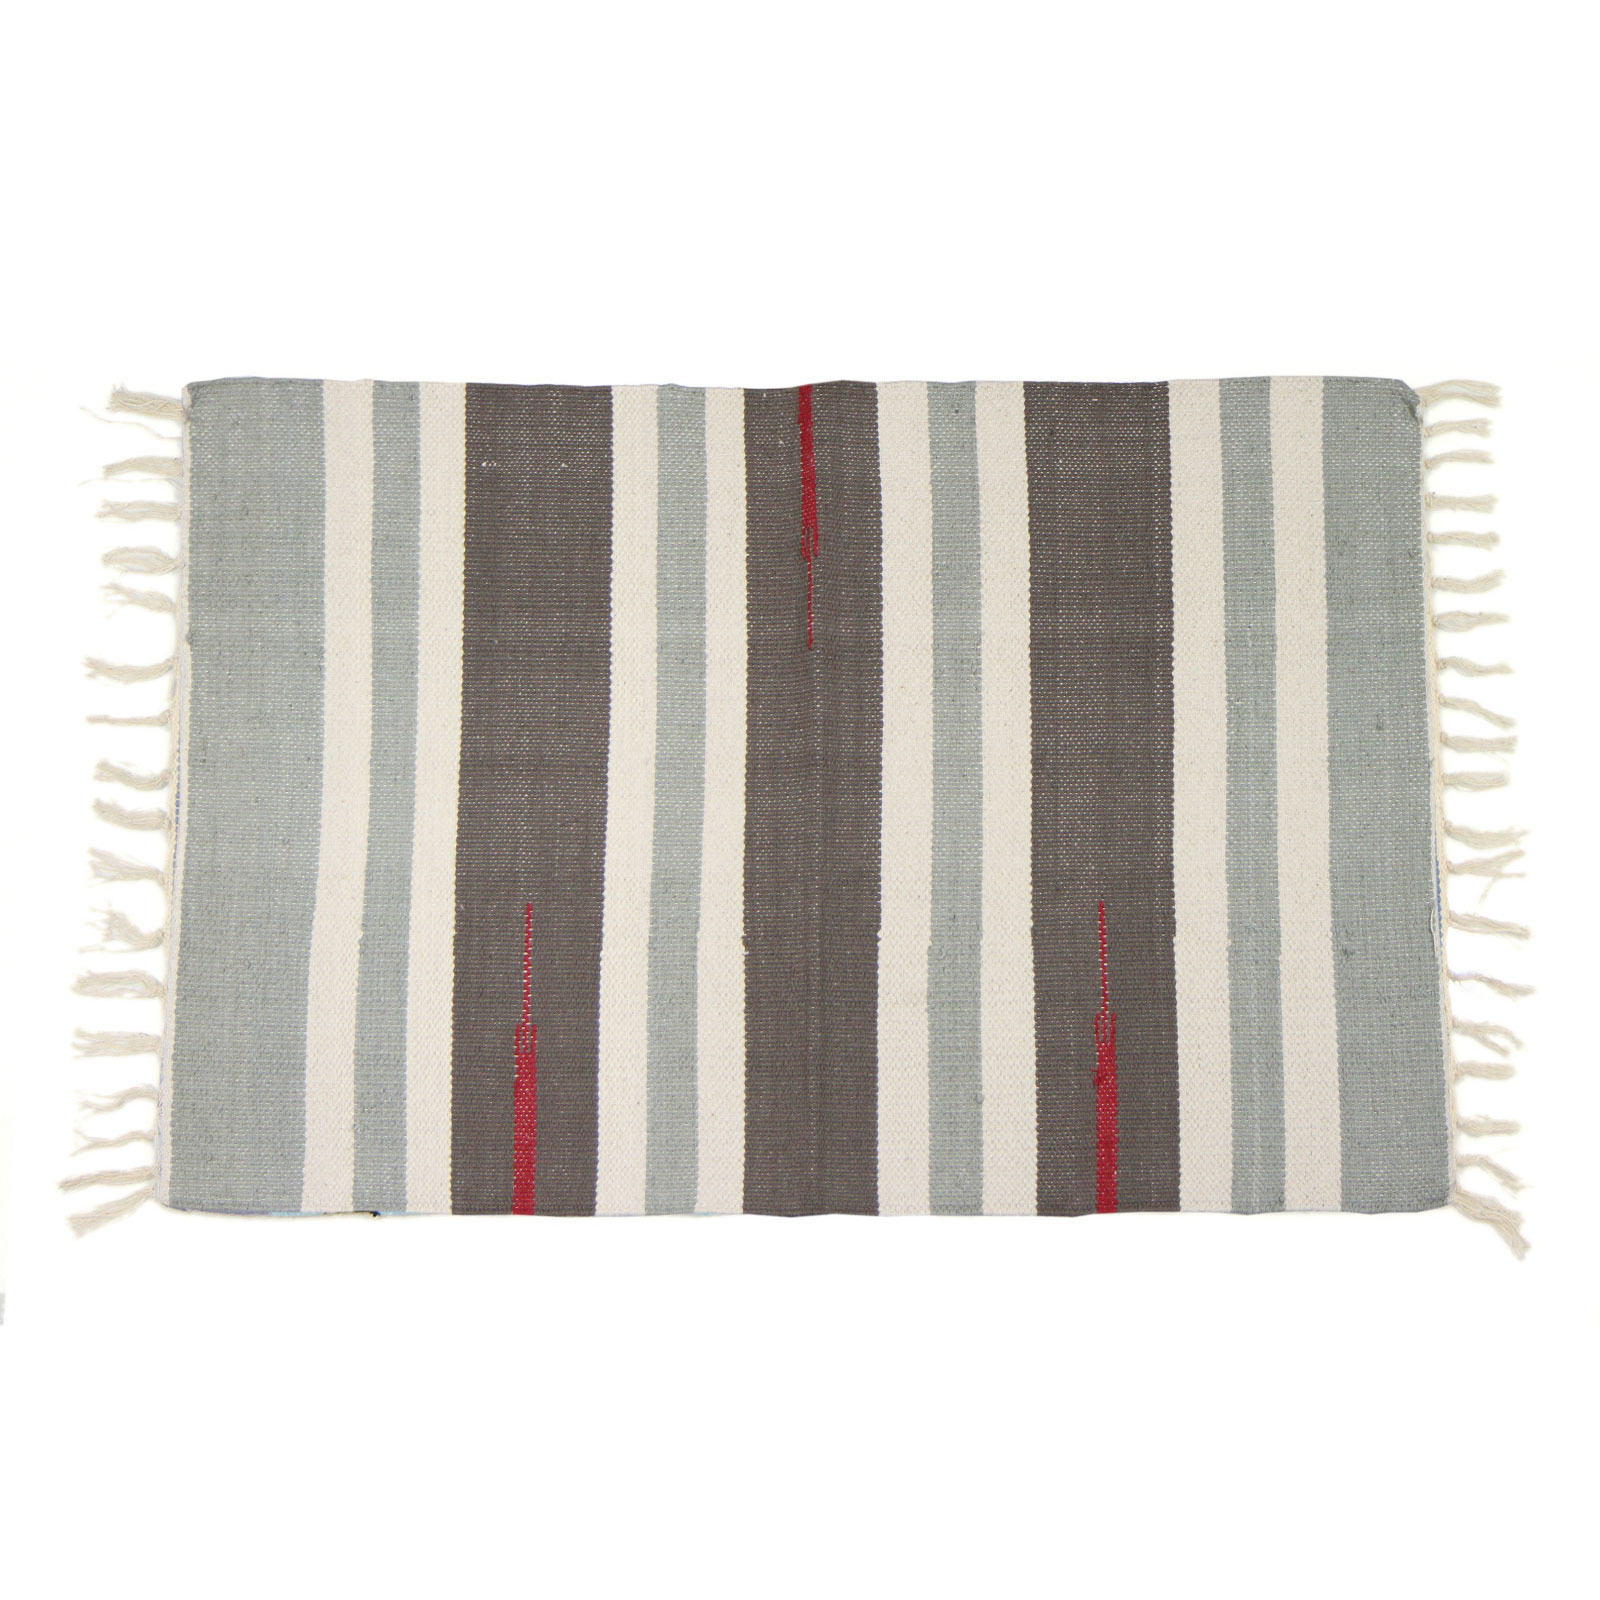 Woven Kitchen Rugs: Colourful 100 % Cotton Striped Flat Woven Rug